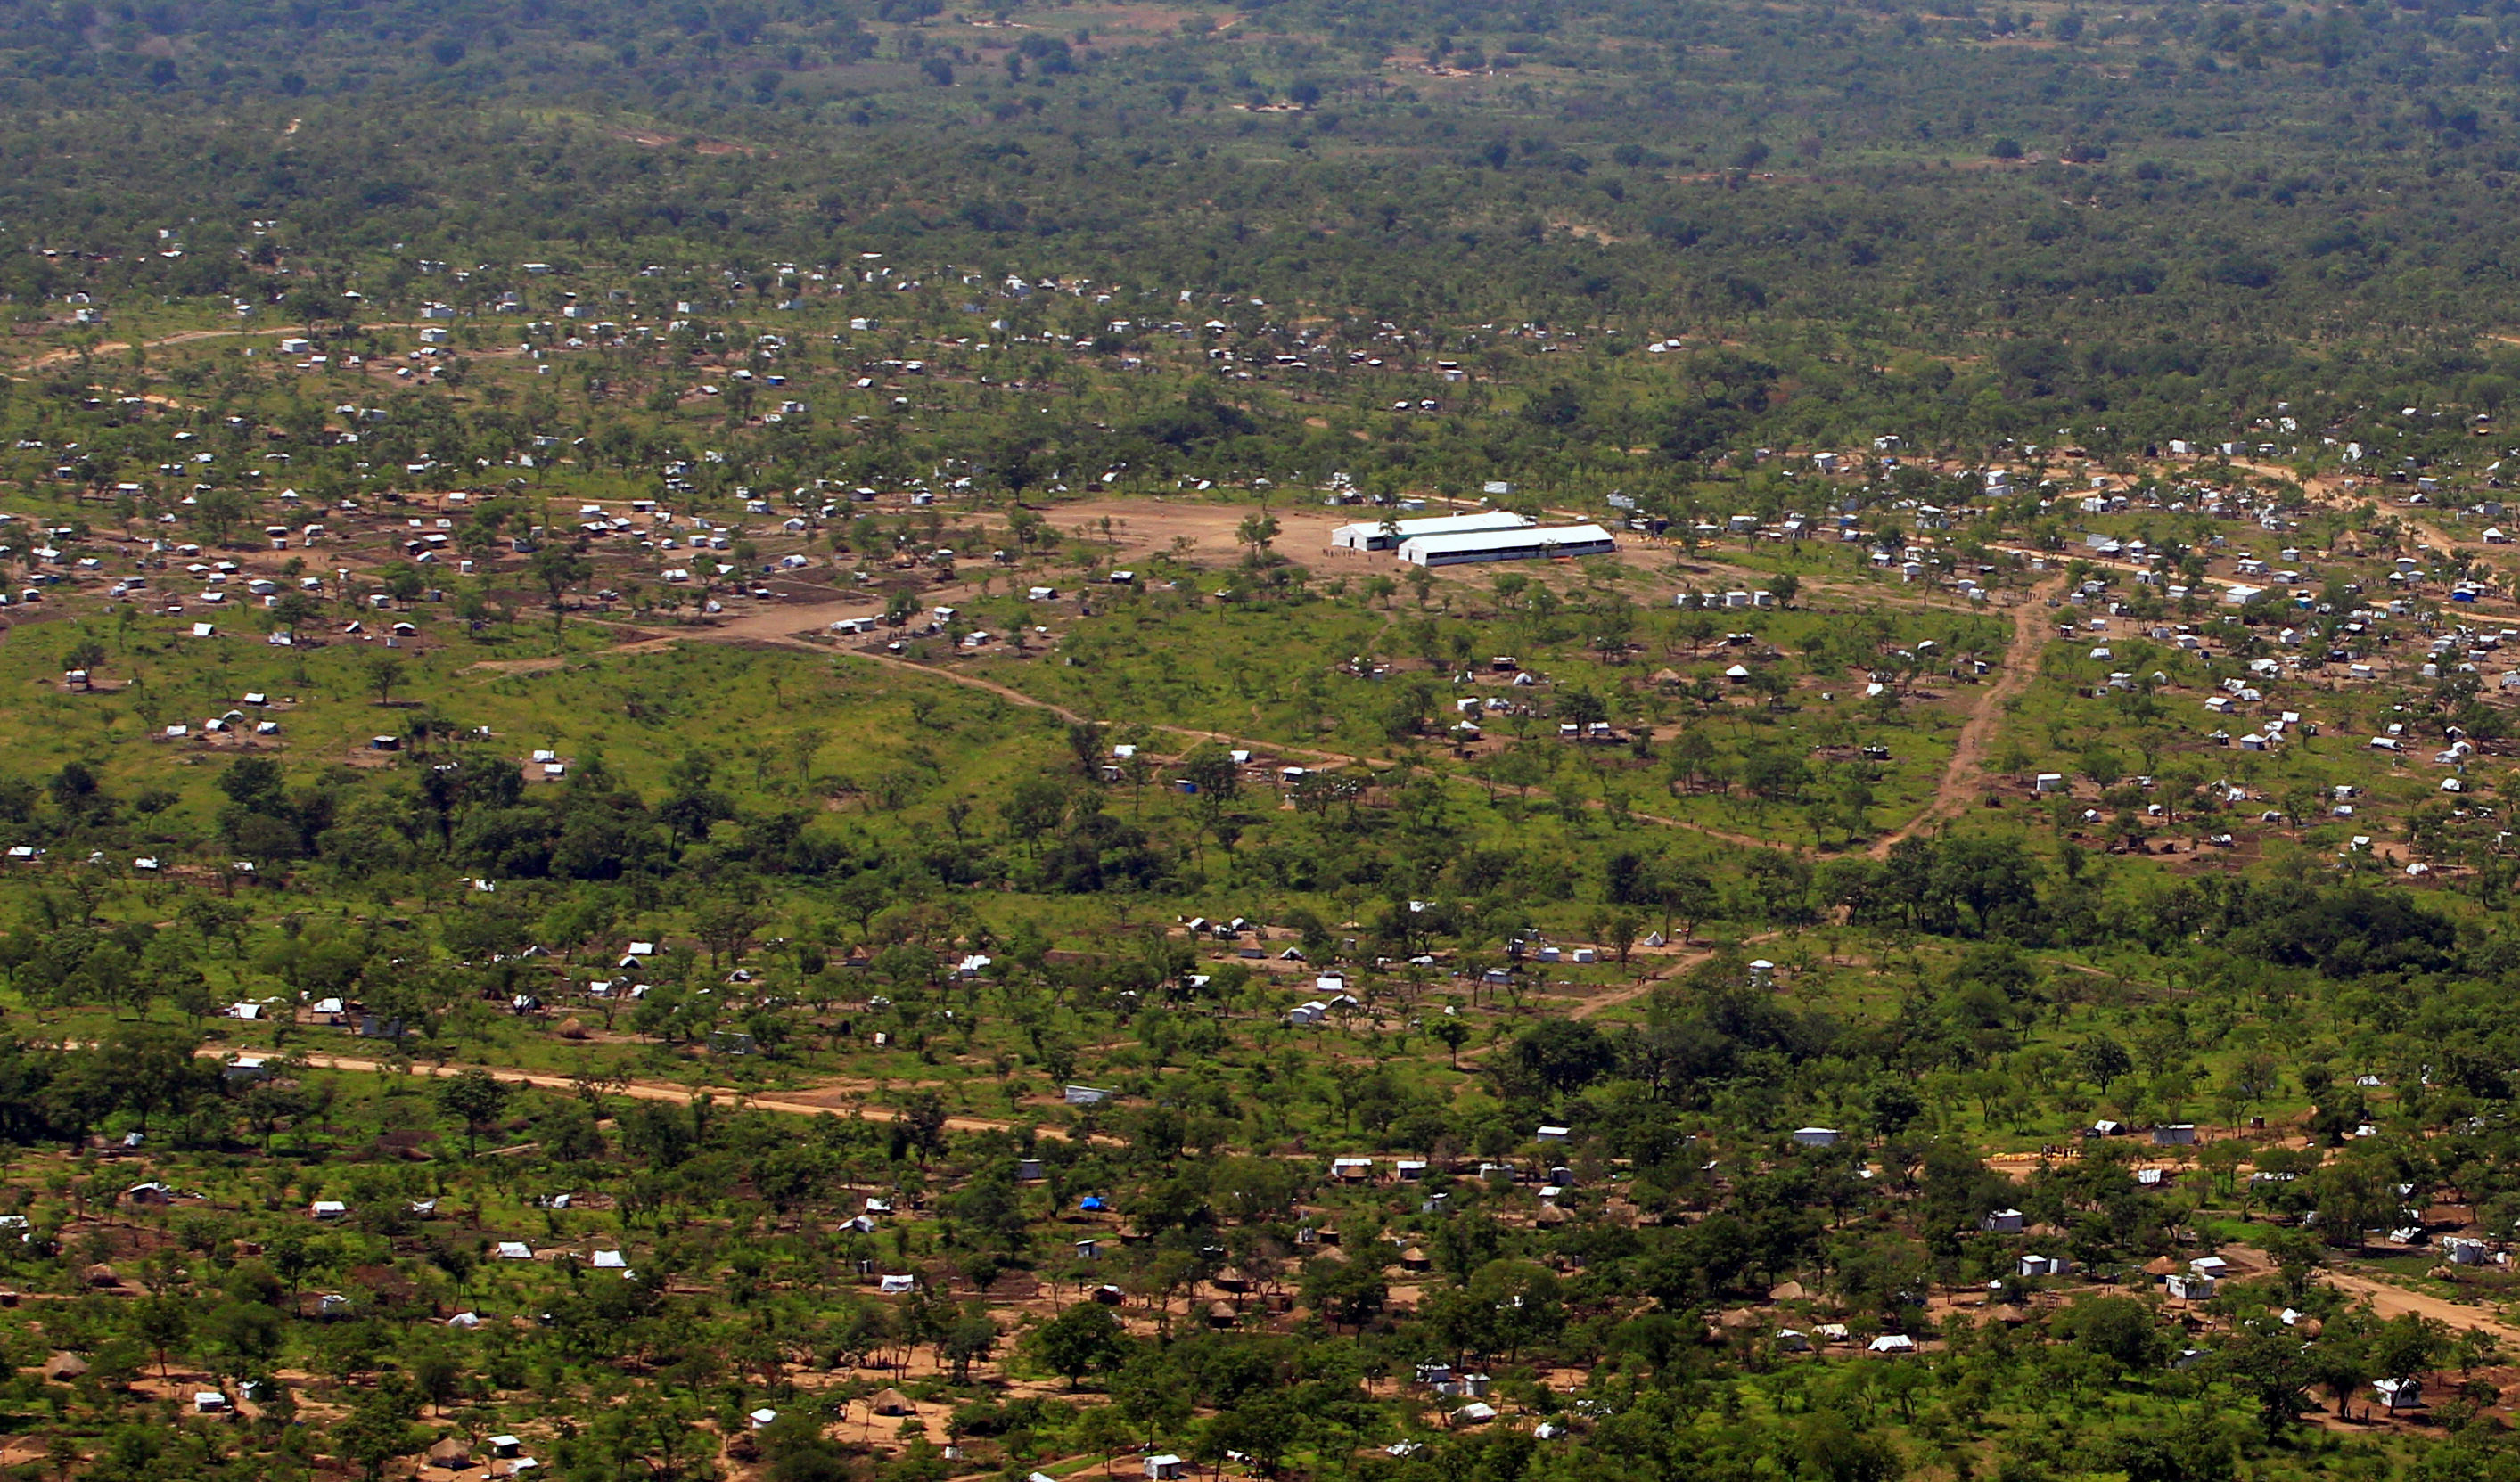 A view from a helicopter shows Imvepi settlement camp, where South Sudanese who fled civil war are being settled, in northern Uganda June 22, 2017. REUTERS/James Akena - RTS188CI